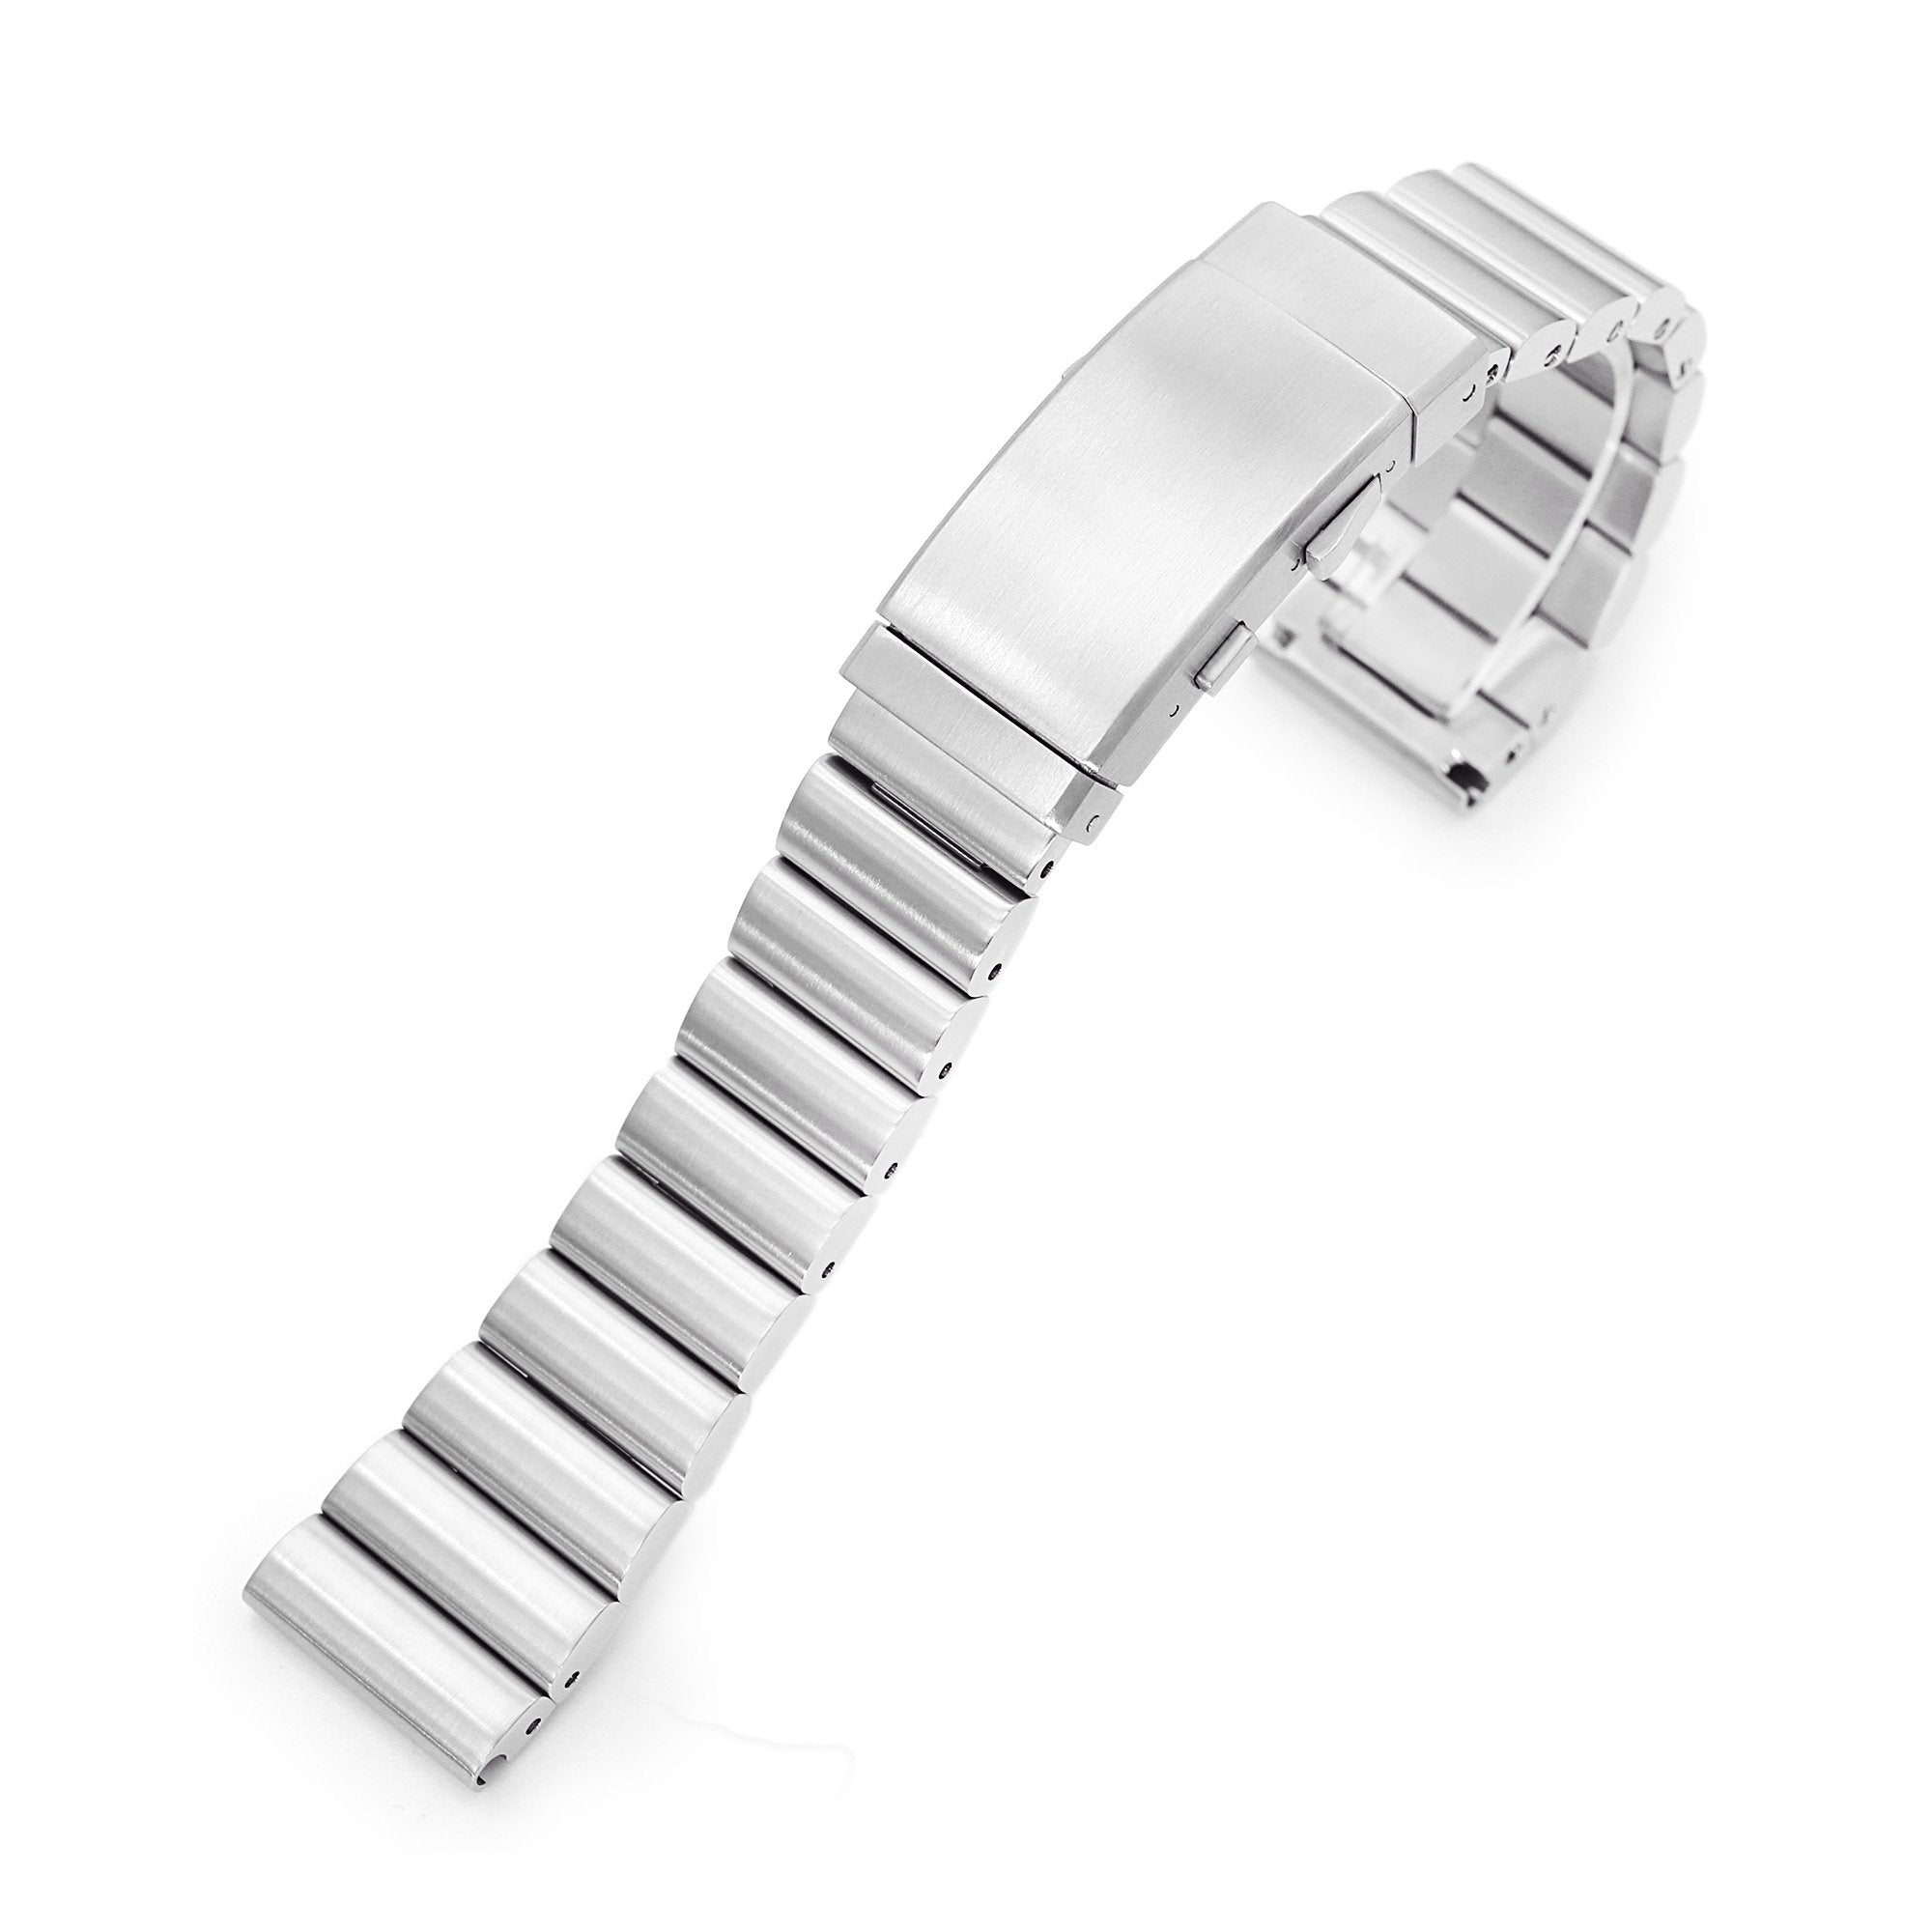 22mm Bandoleer 316L Stainless Steel Watch Bracelet Straight End Brushed Wetsuit Ratchet Buckle Strapcode Watch Bands